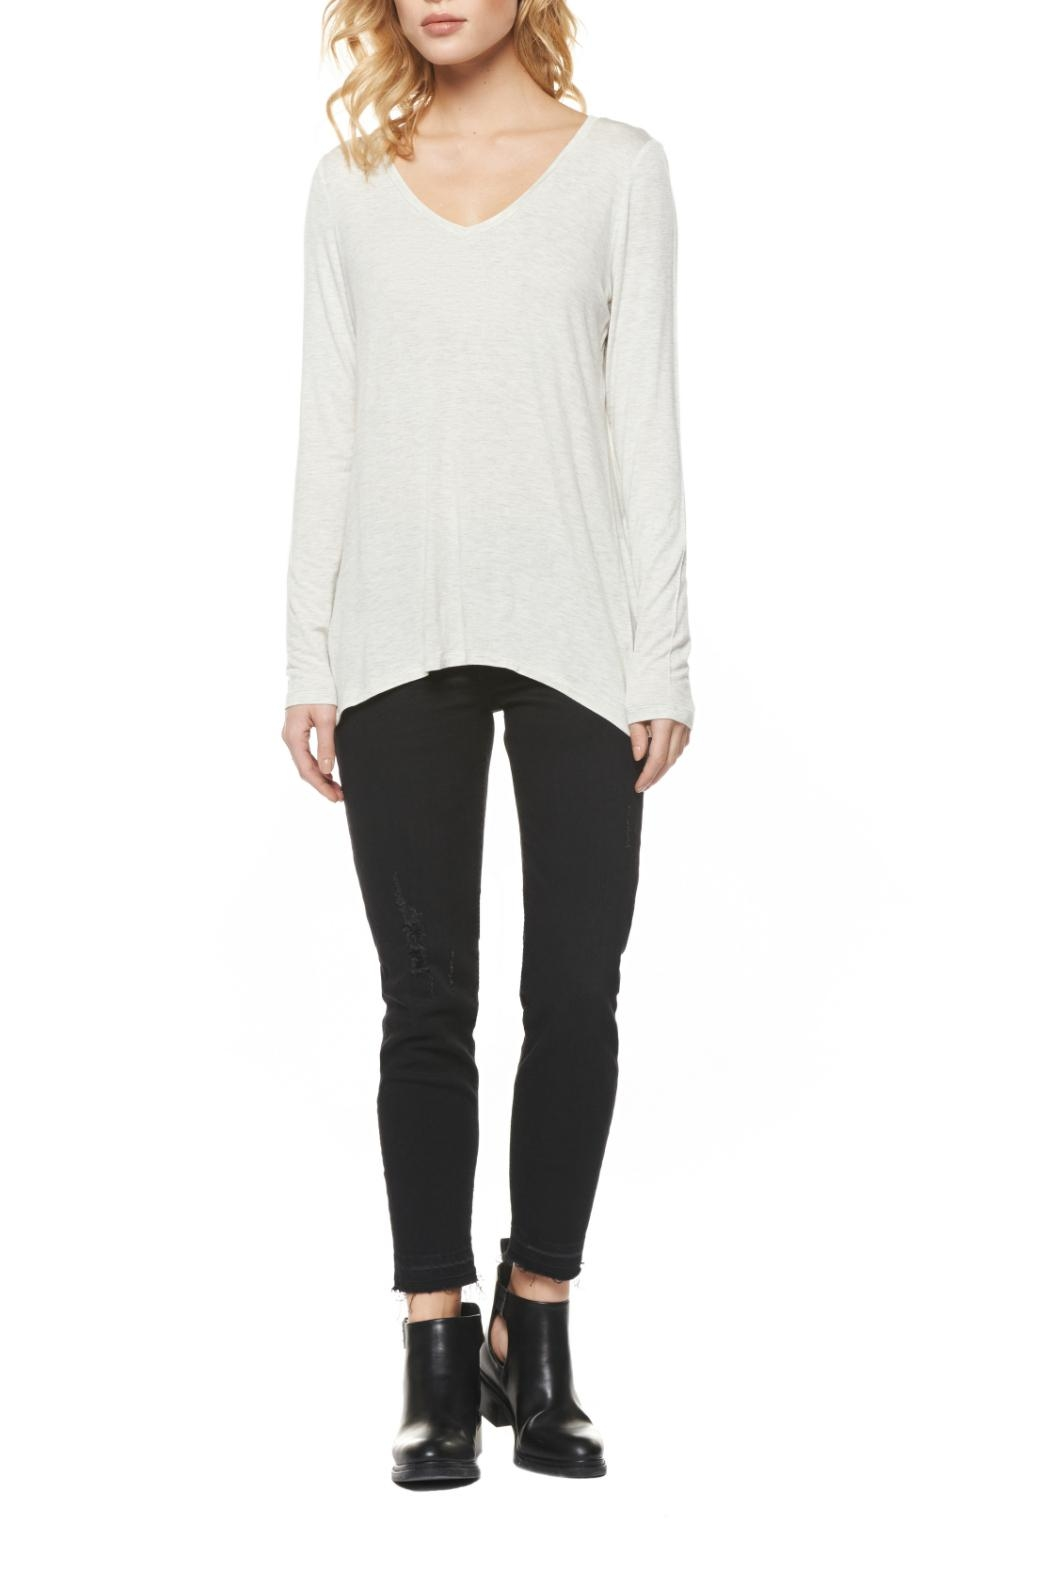 Dex Long Sleeve Top - Main Image